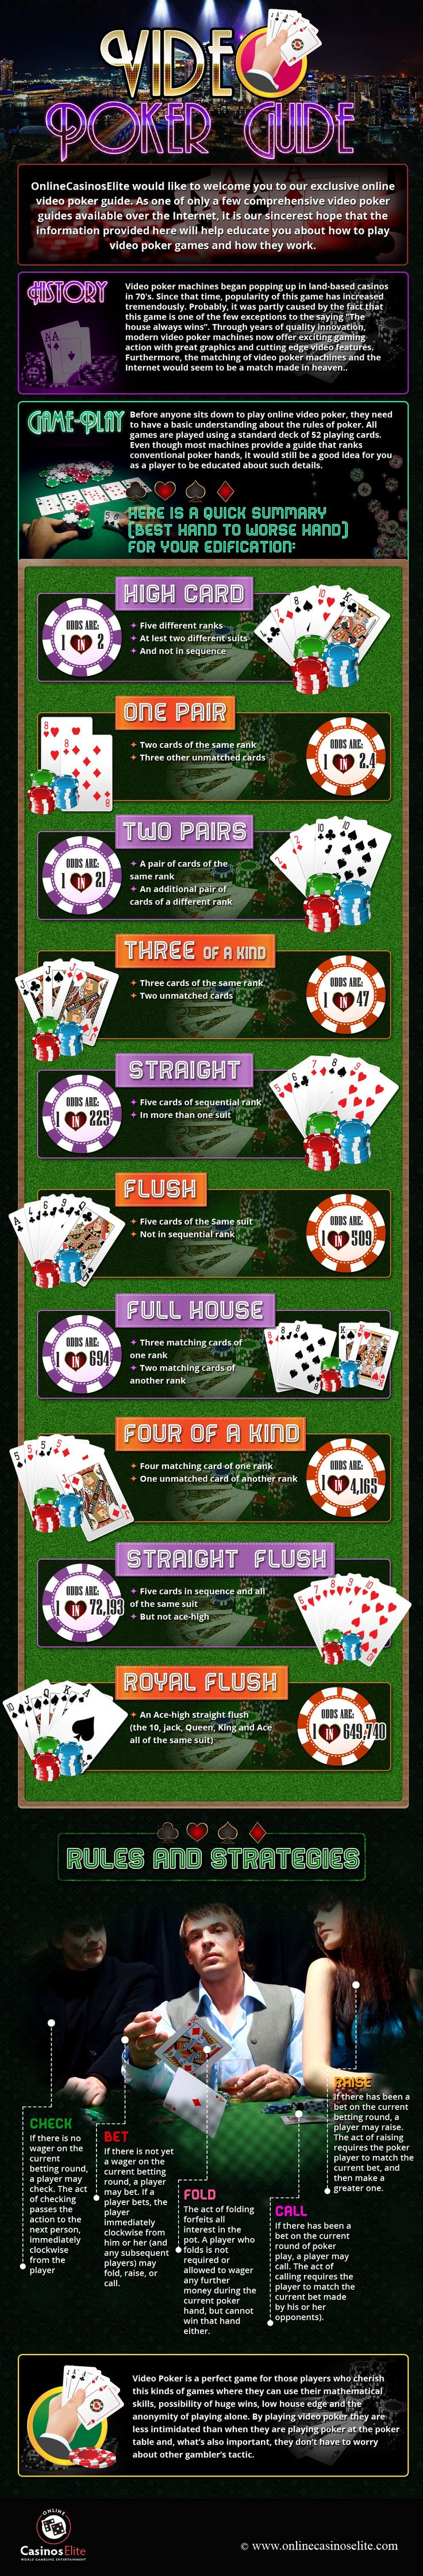 Video Poker Guide - Infographic